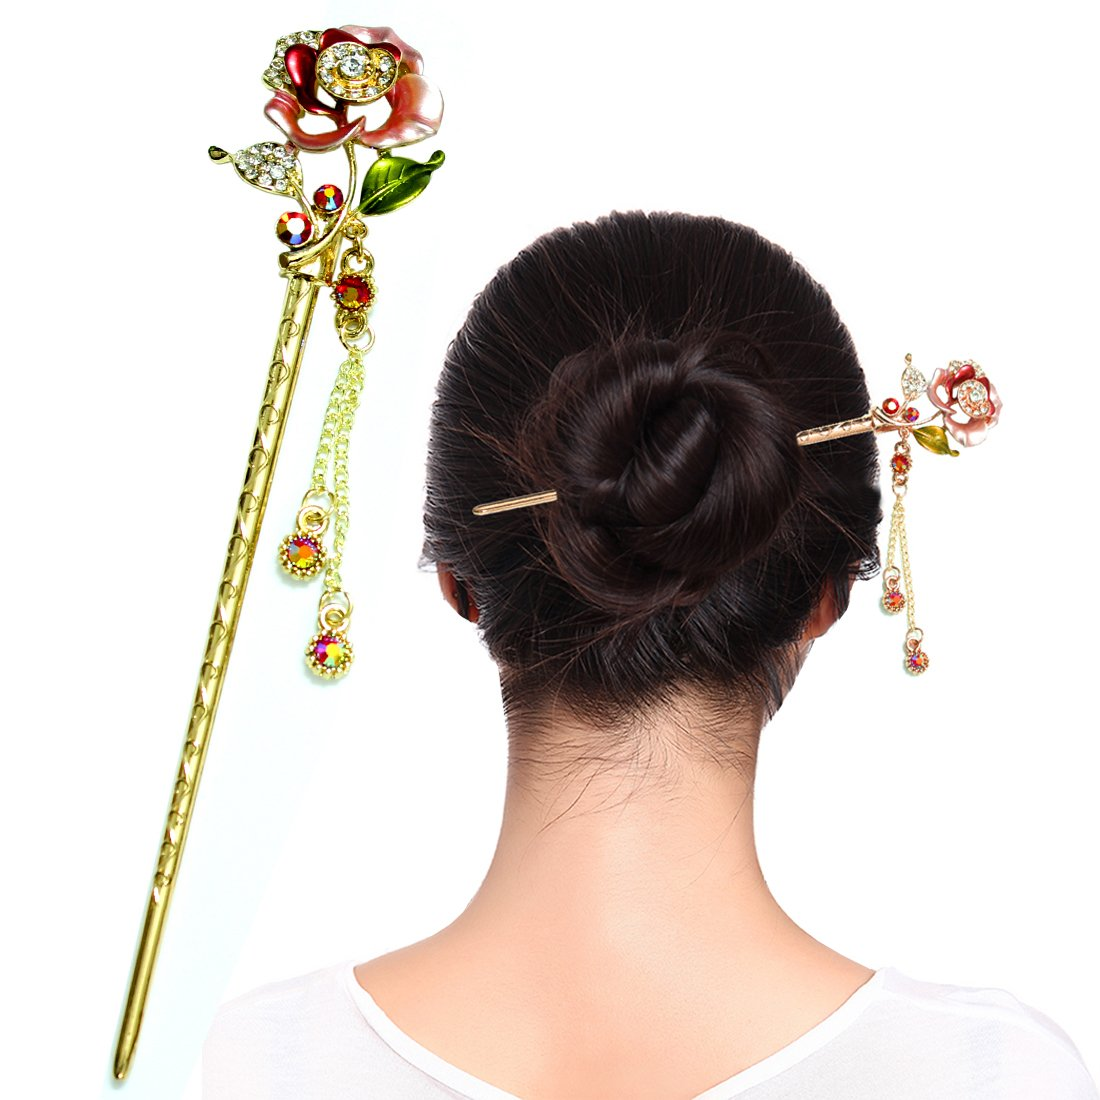 """Fashion & Lifestyle Hair Decor Chinese Traditional Style Hair Sticks Shawl Pins Picks Pics Forks for Women Girls Hair Updo Making Accessory 6"""" with Flower, Pink"""